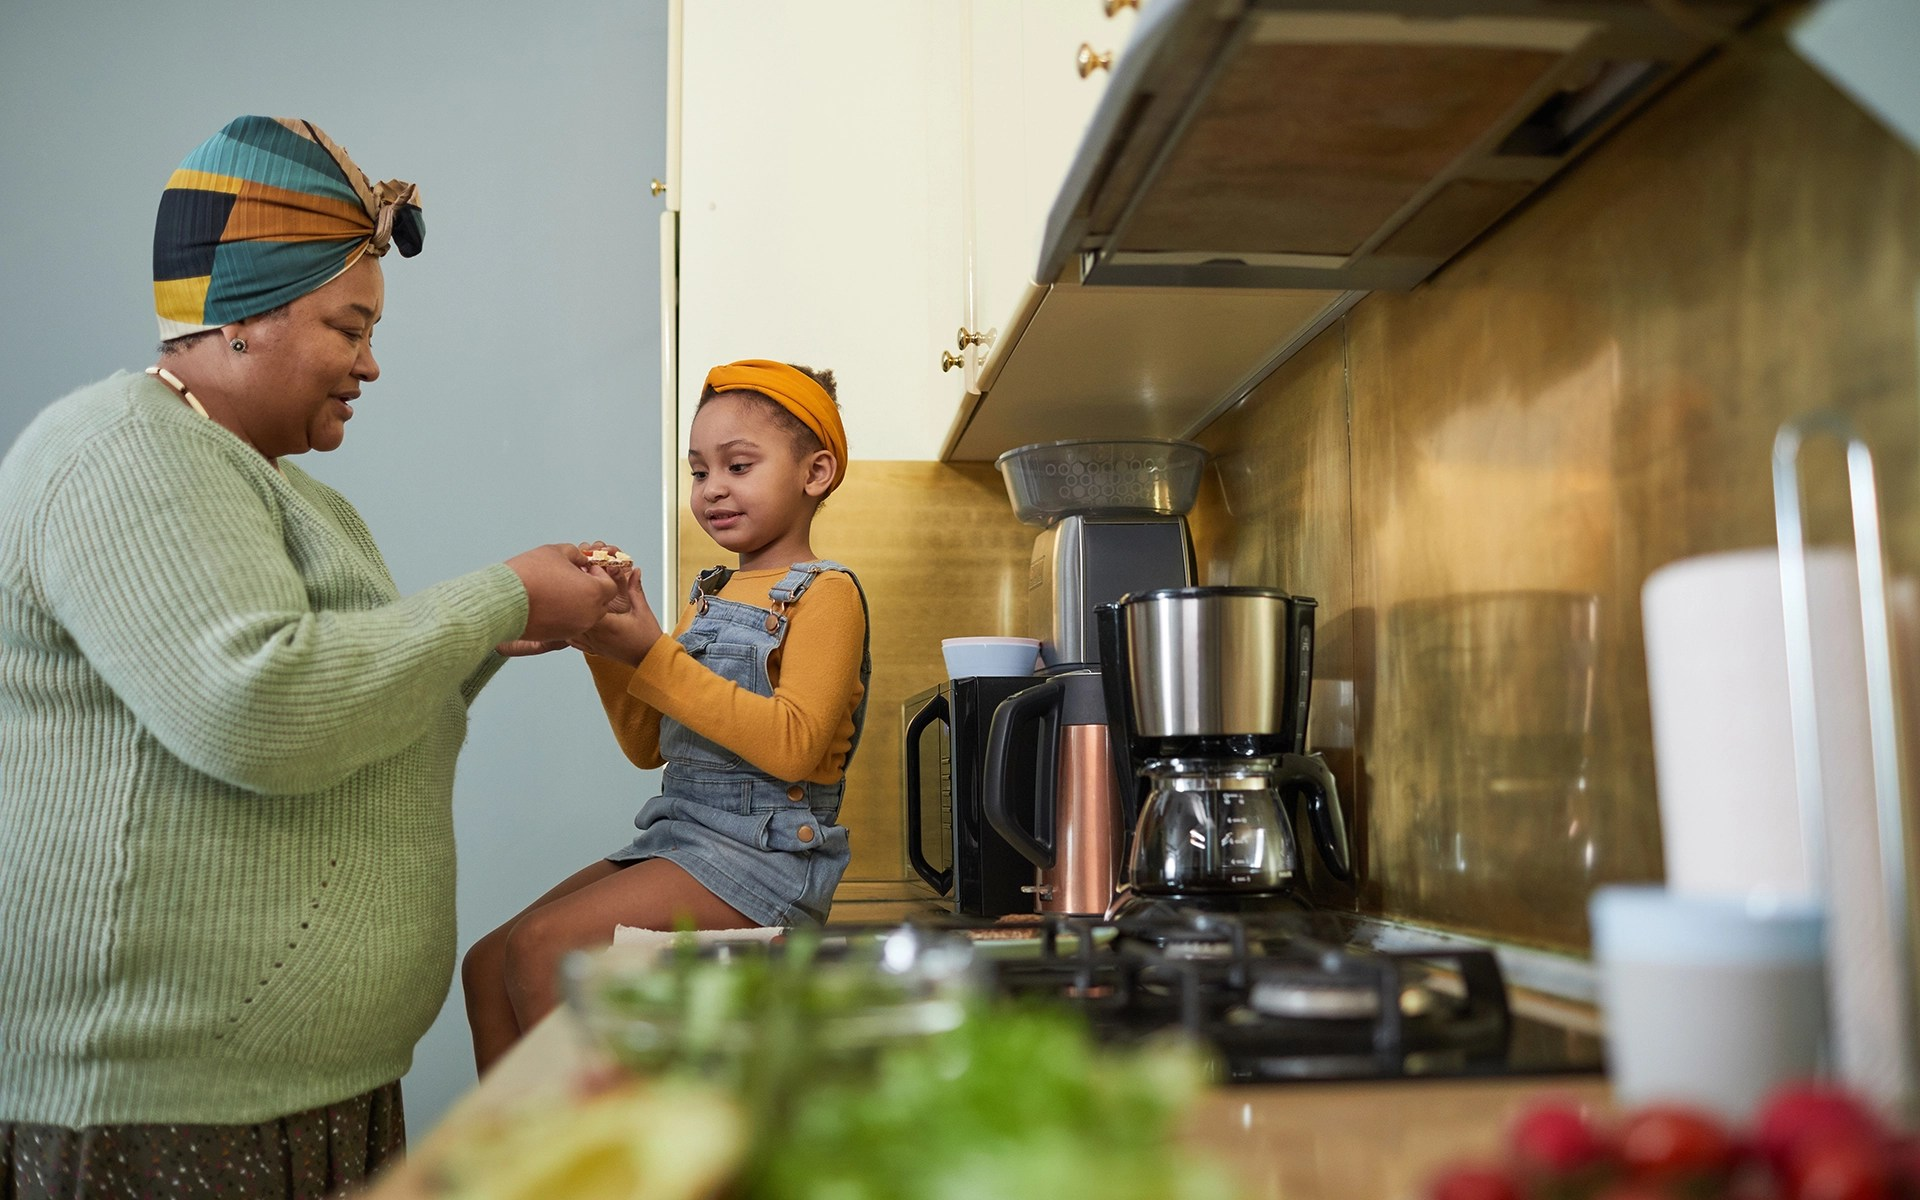 Side view portrait of cute African-American girl sitting on kitchen counter and enjoying healthy snack with grandmother in cozy home interior, copy space